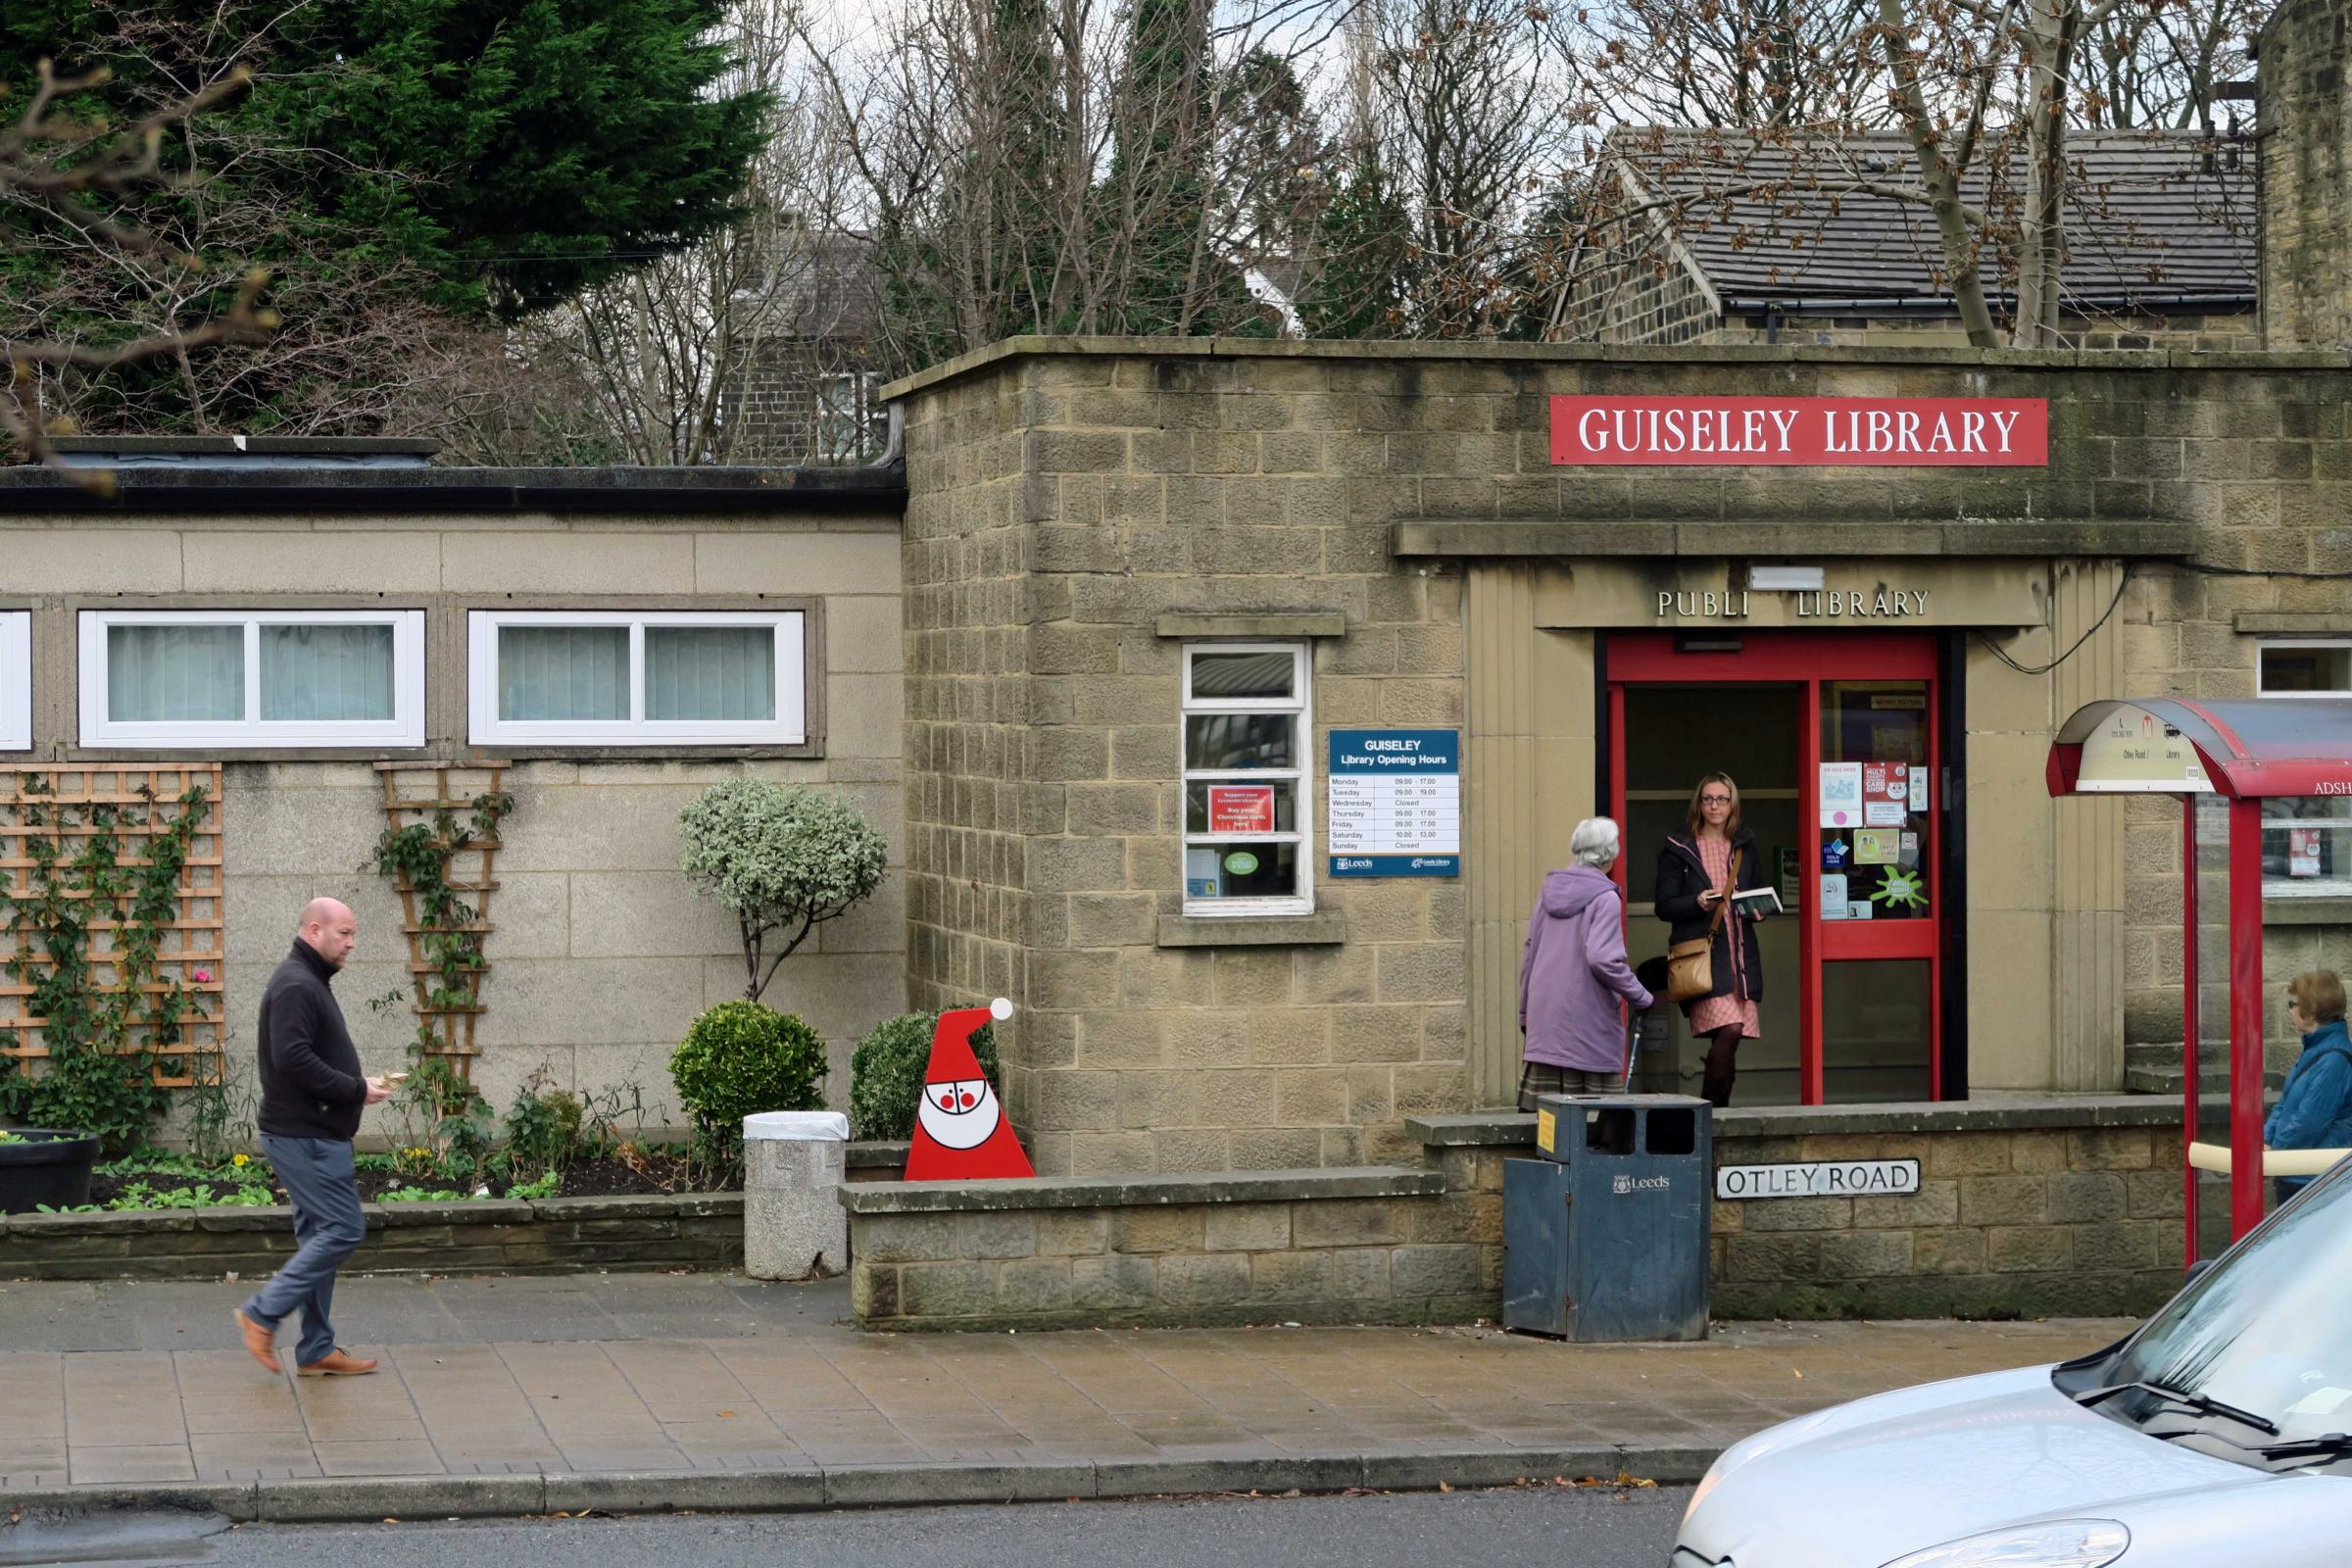 Guiseley Library is to be moved